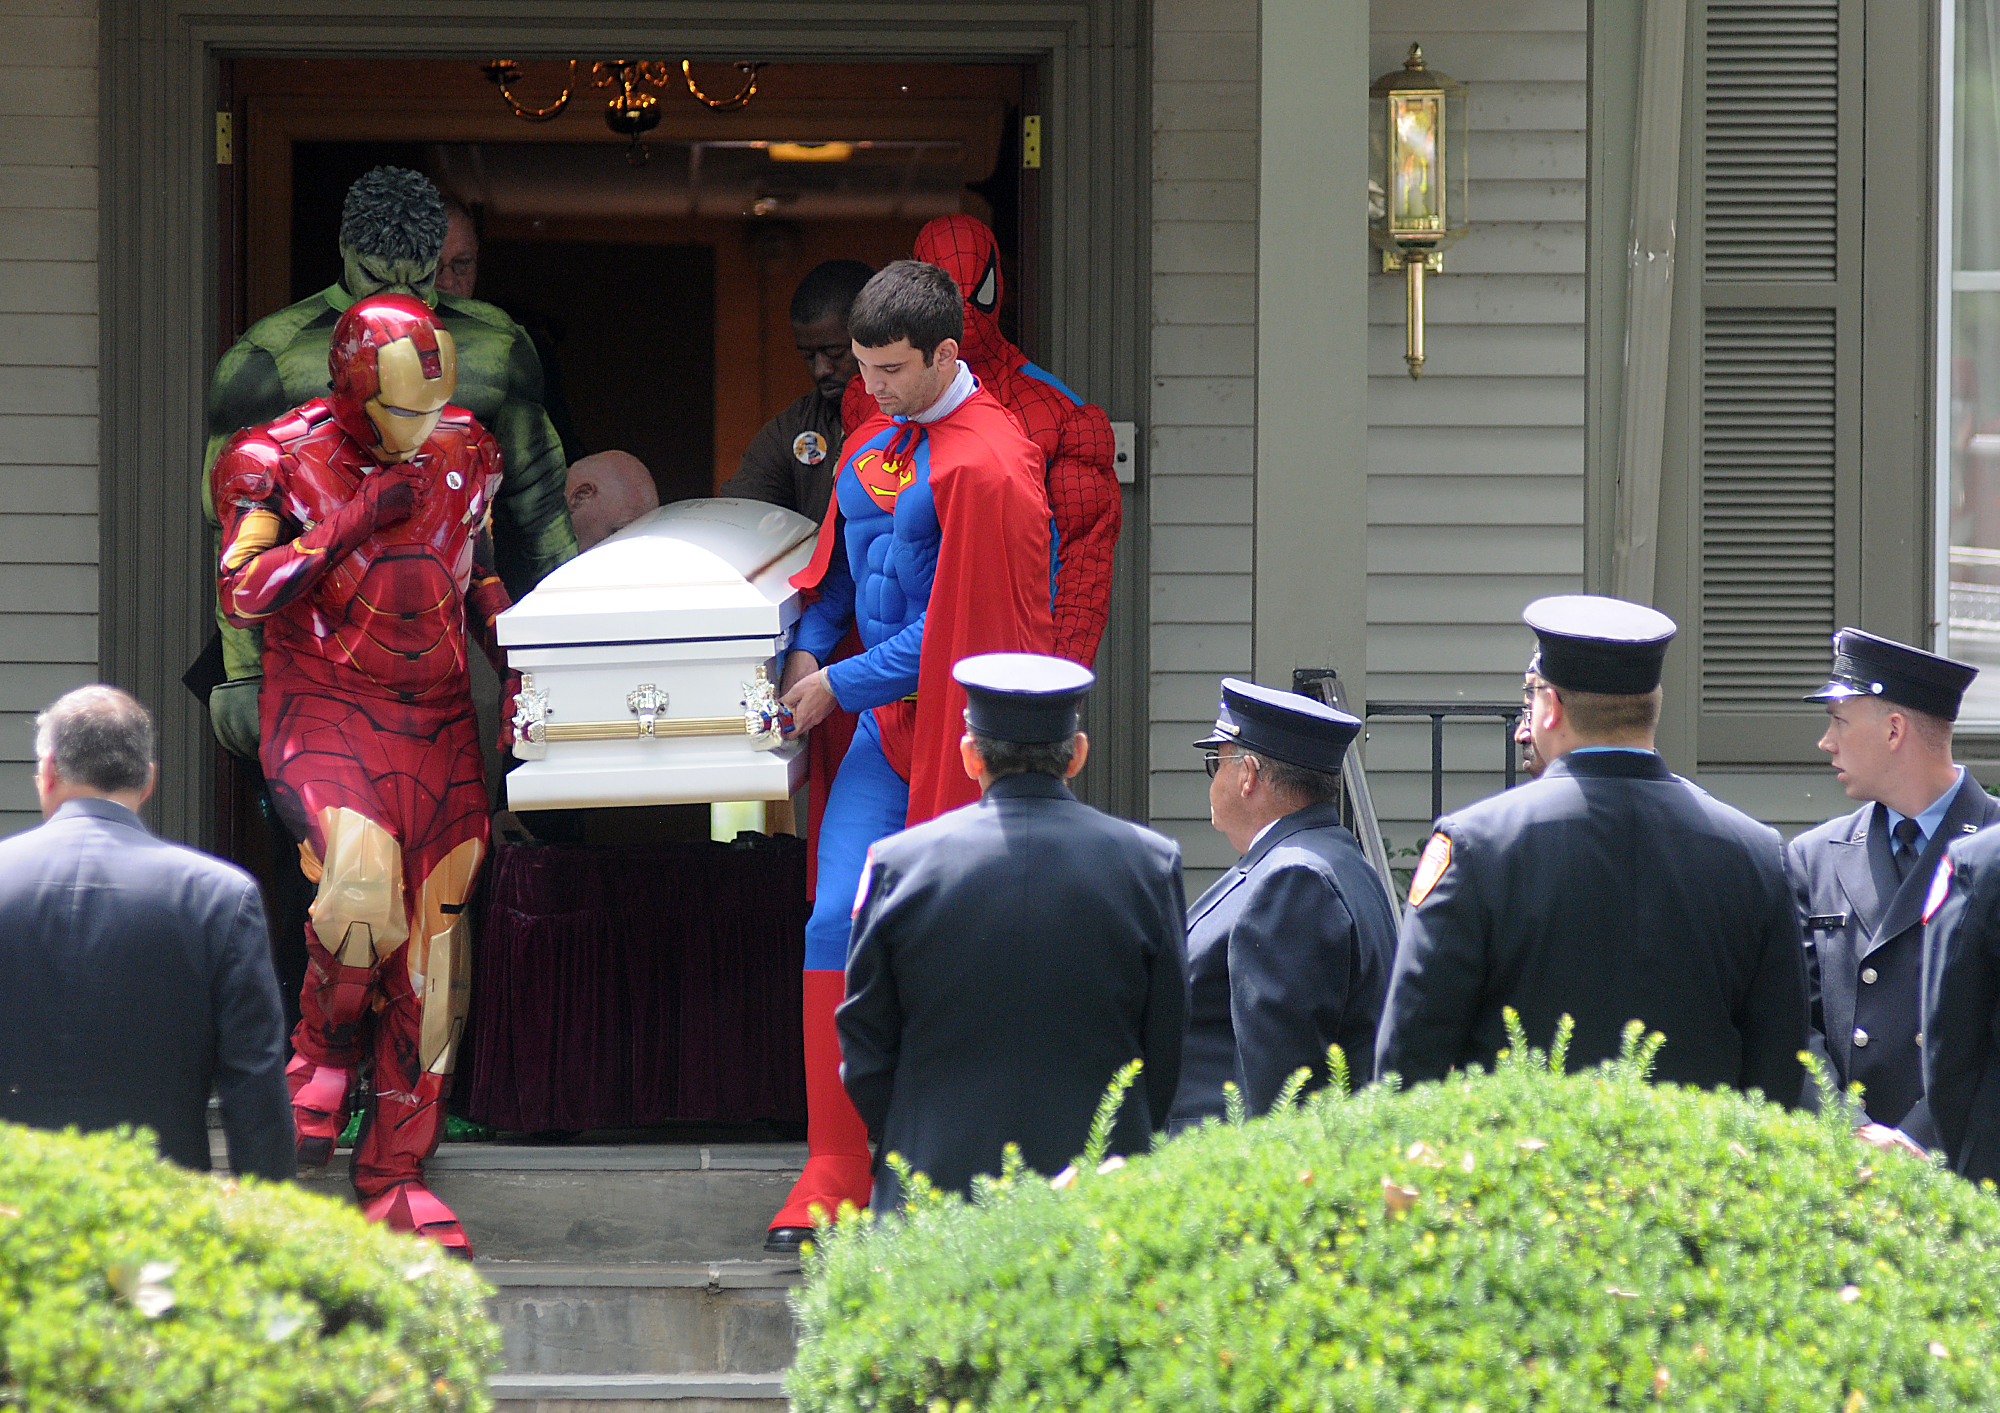 The casket of 5-yr-old Franky Talley is escorted from the Hooper Funeral Home on W. Trenton Avenue in Morrisville by pallbearers dressed as superheroes to a mass at St. John the Evangelist in Morrisville before a burial at the Holy Trinity Cemetery in Lower Makefield on Monday, June 30, 2014. Franky lost his battle to a rare brain cancer the week prior.